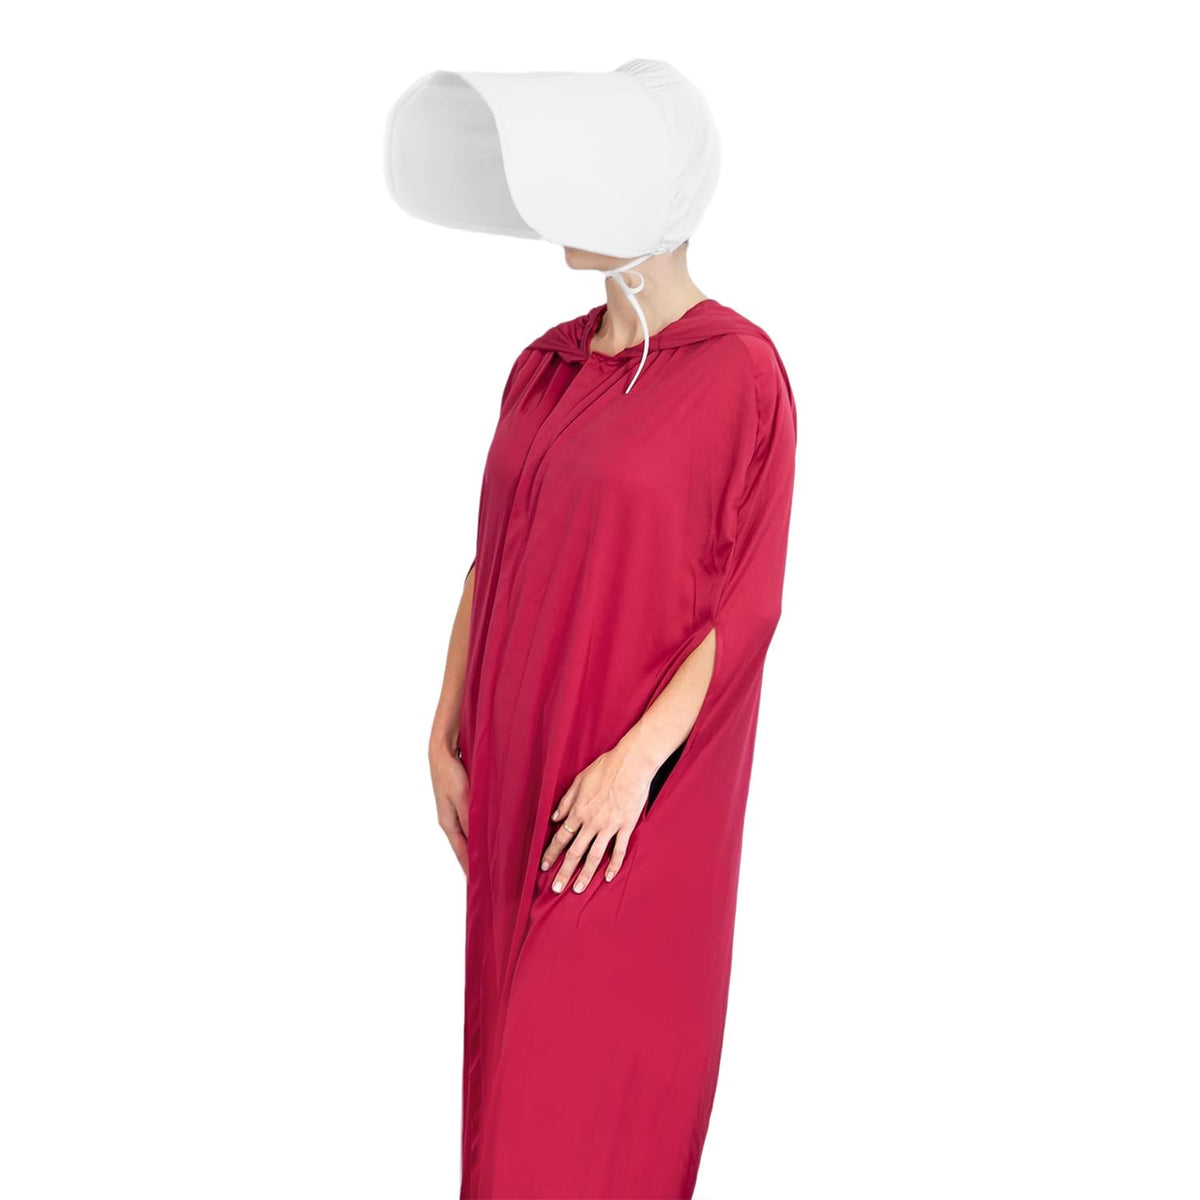 The Handmaid's Tale Authentic Robe & Hat Costume | Perfect Outfit For Cosplay